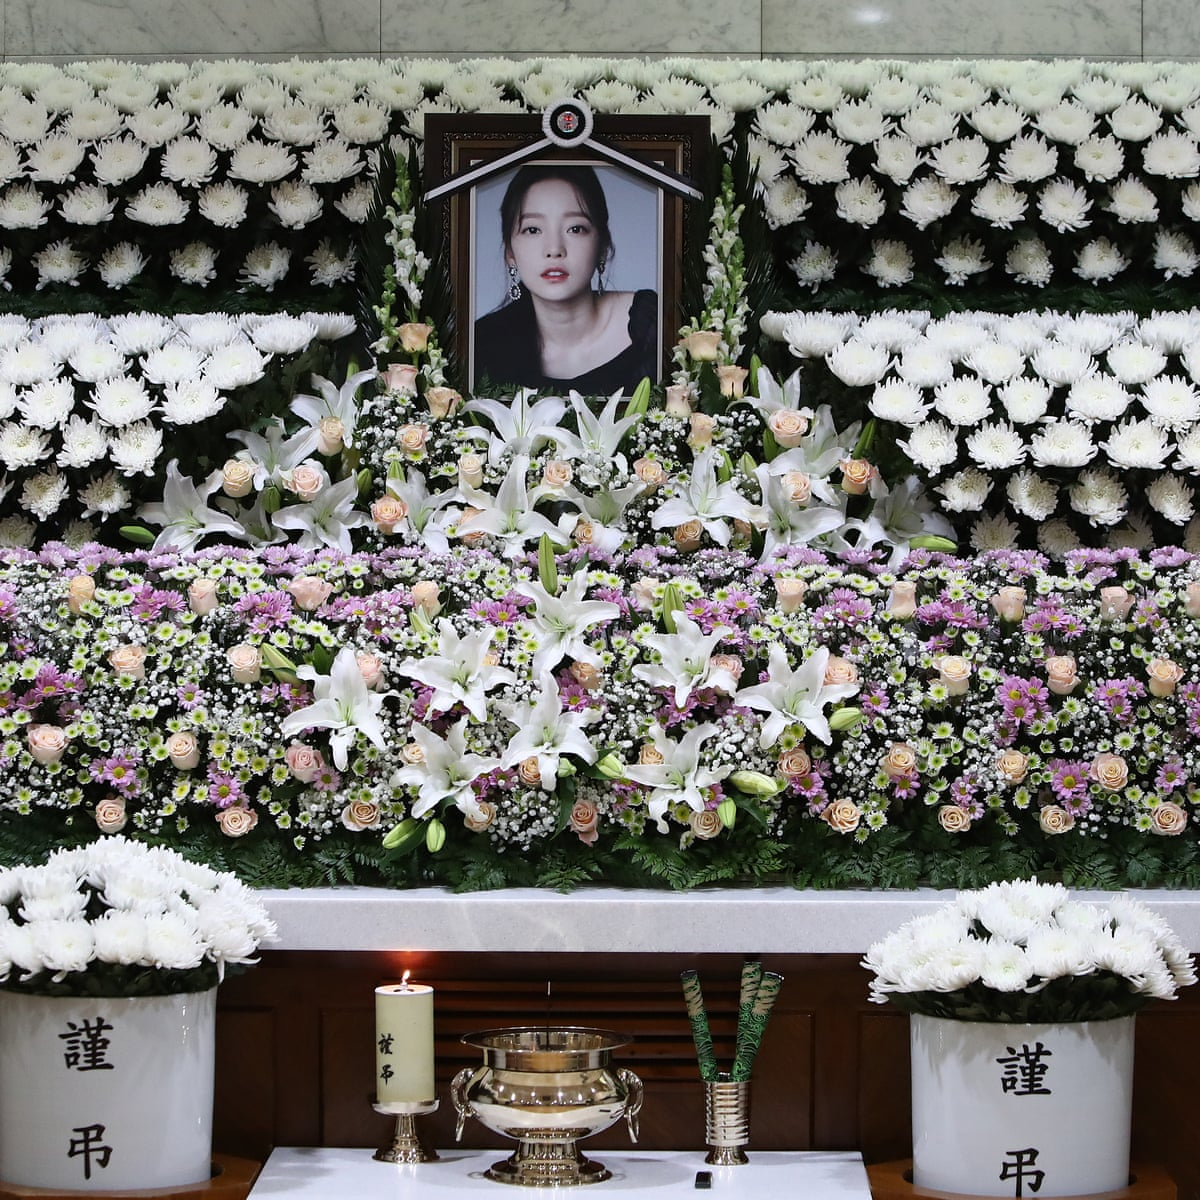 I have reported on 15 Korean celebrity suicides. The blame game ...